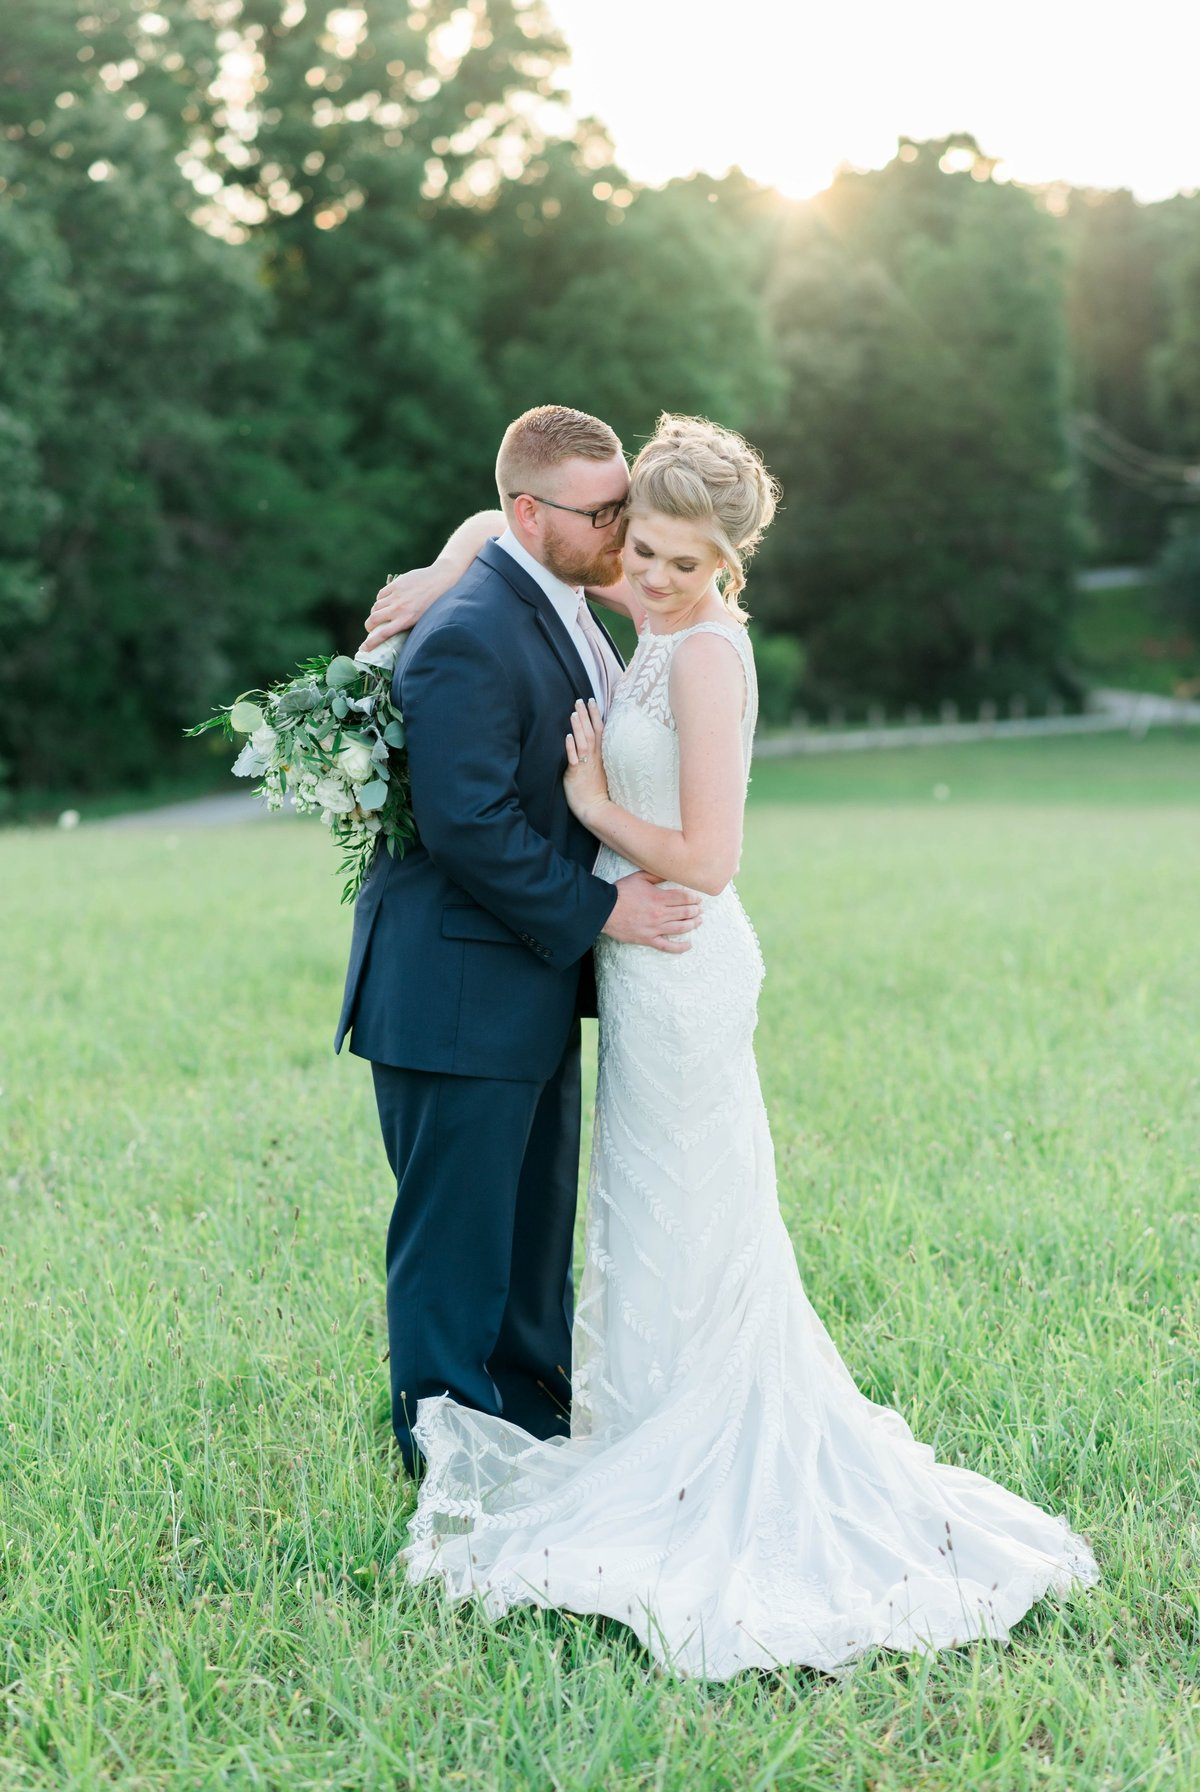 SorellaFarms_VirginiaWeddingPhotographer_BarnWedding_Lynchburgweddingphotographer_DanielleTyler+24(2)